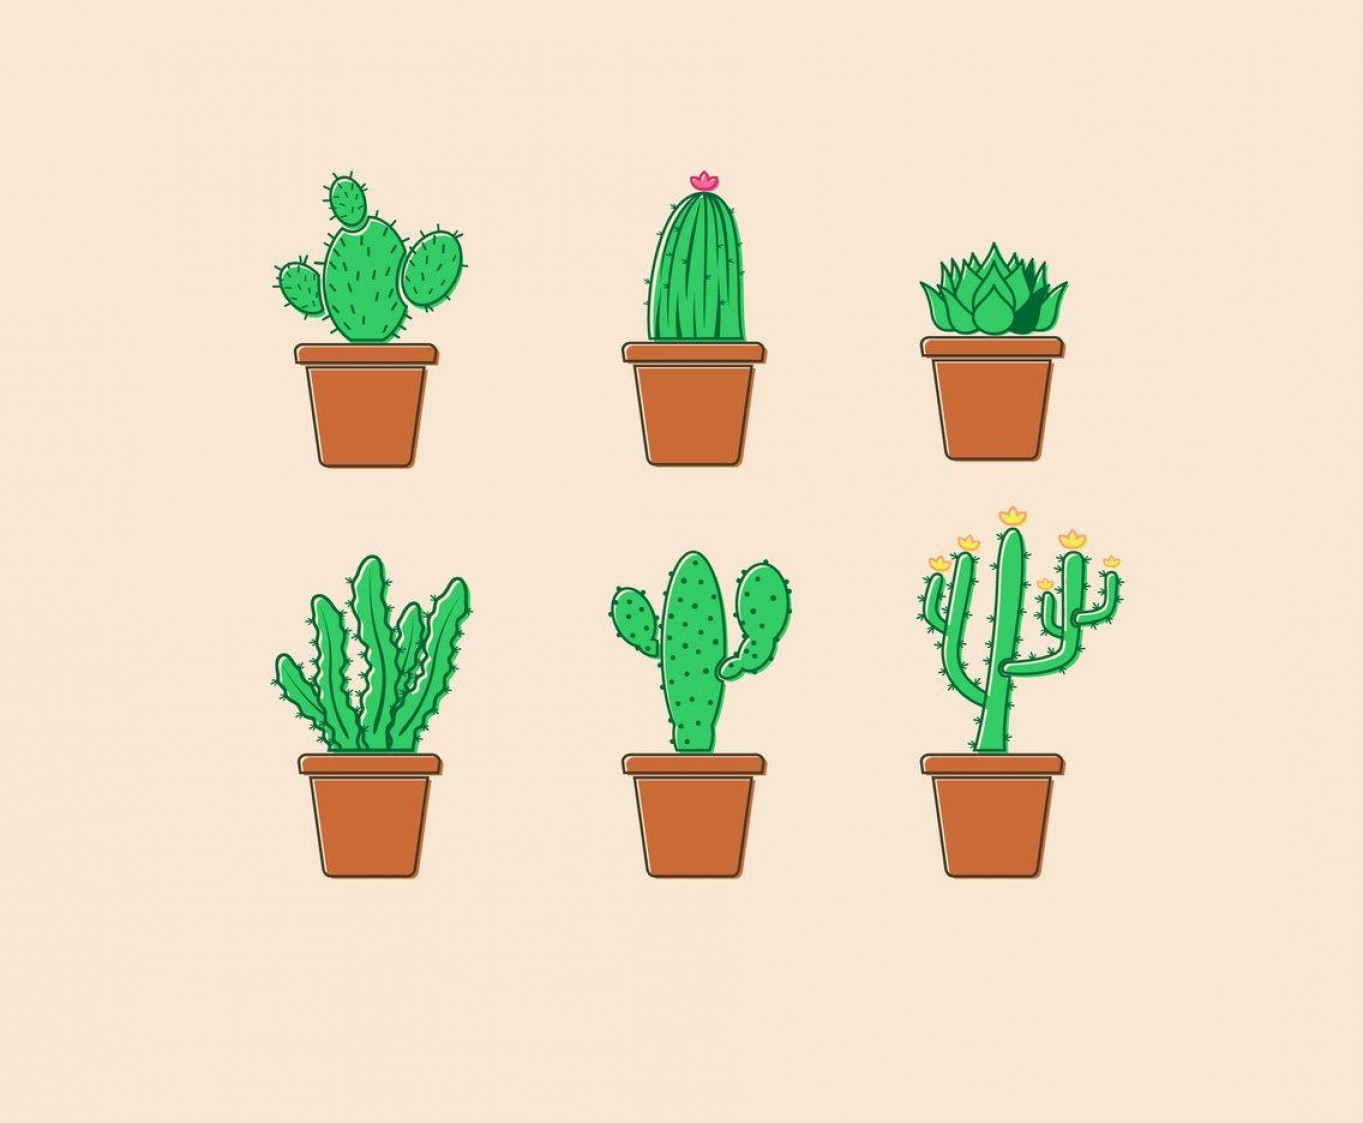 Potted Cactus Plant Vector: Unique Potted Cactus Plants Vector Pictures